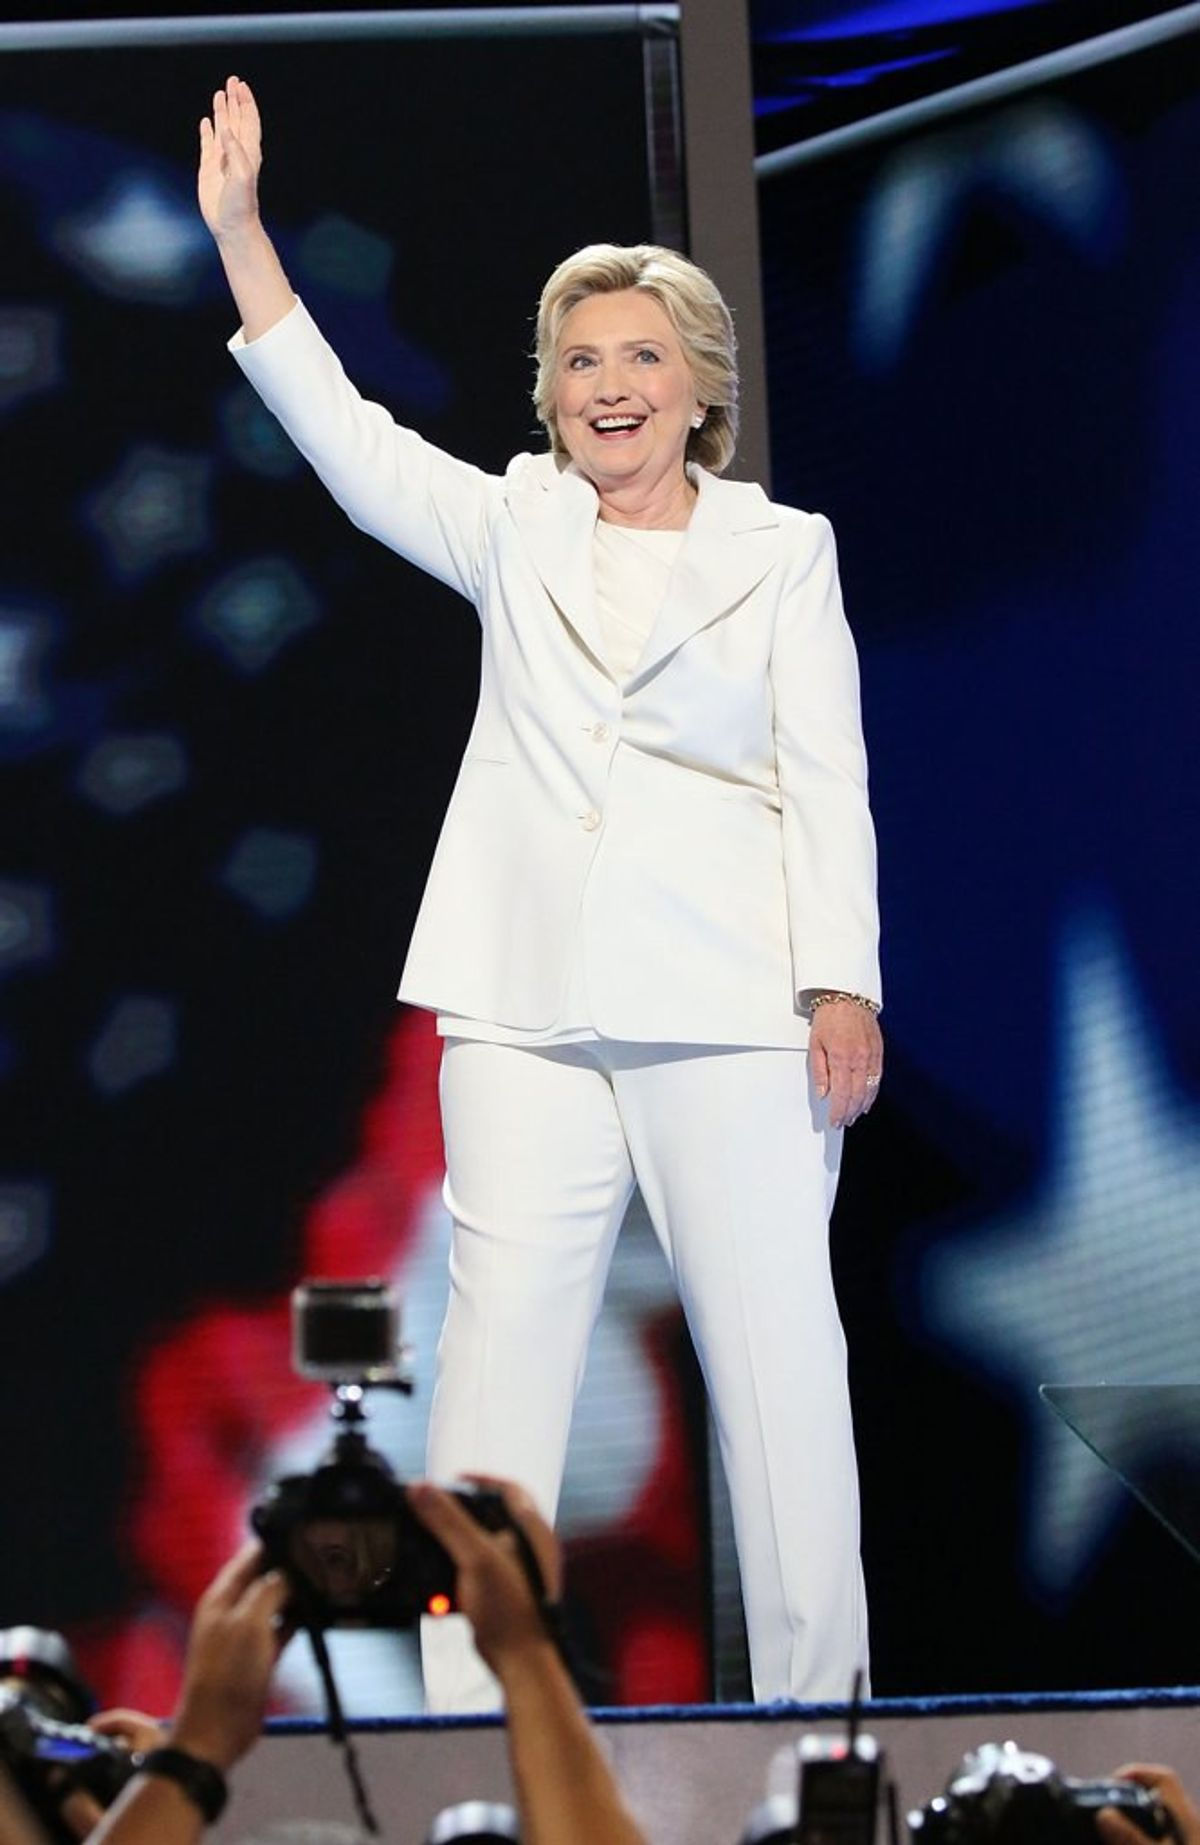 I Want A Female President, But I Can't Vote For This Female Candidate.